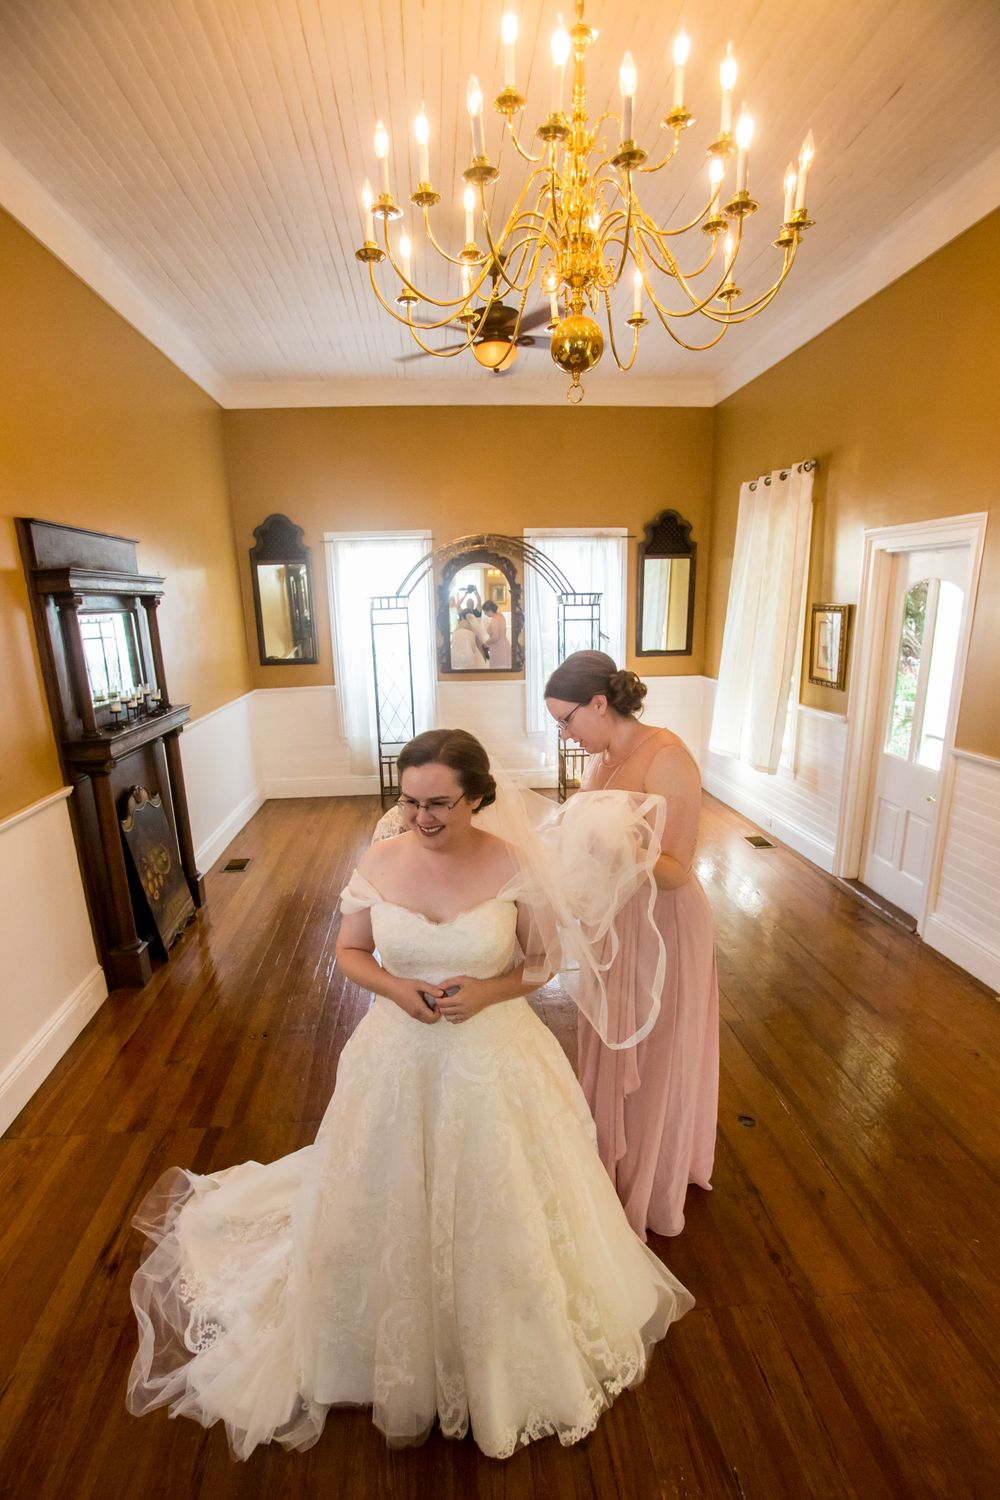 Bride Debra gets ready before her wedding at the River Road and Jasmine House in Lexington, SC